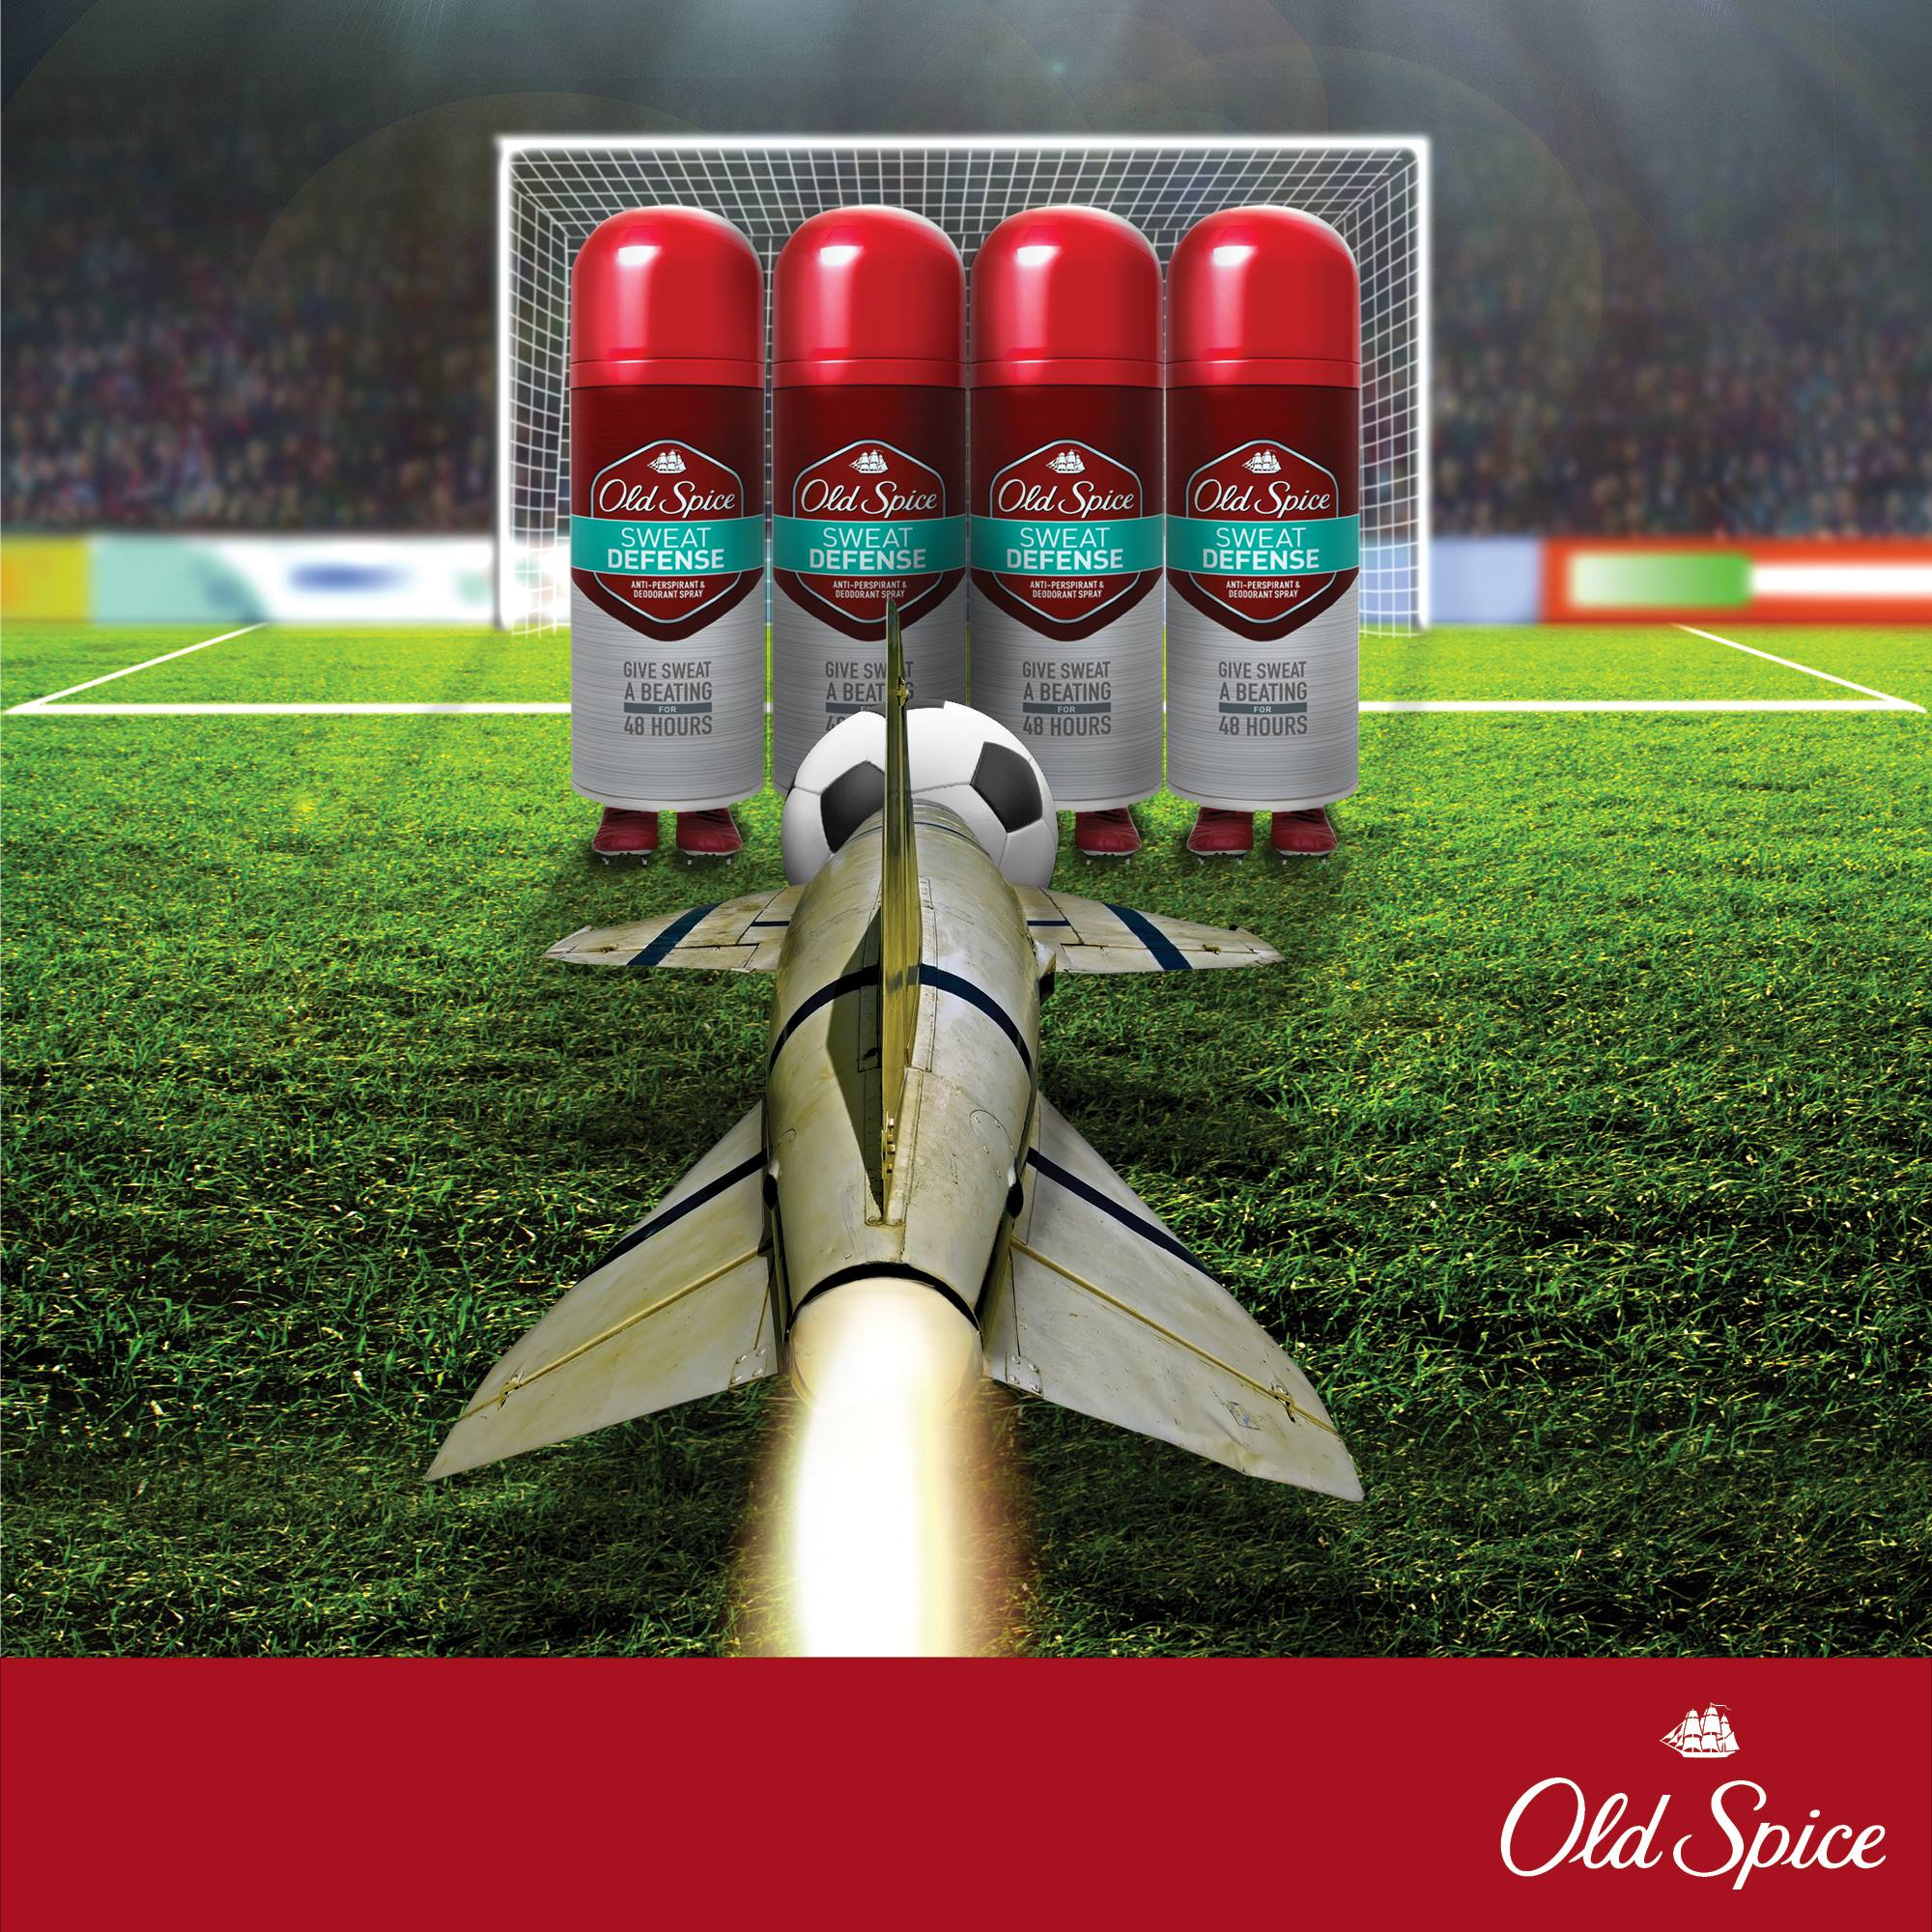 Gorilla social media marketing campaign poster of a rocket pushing a football through a wall of defense of Old Spice cans in a football pitch